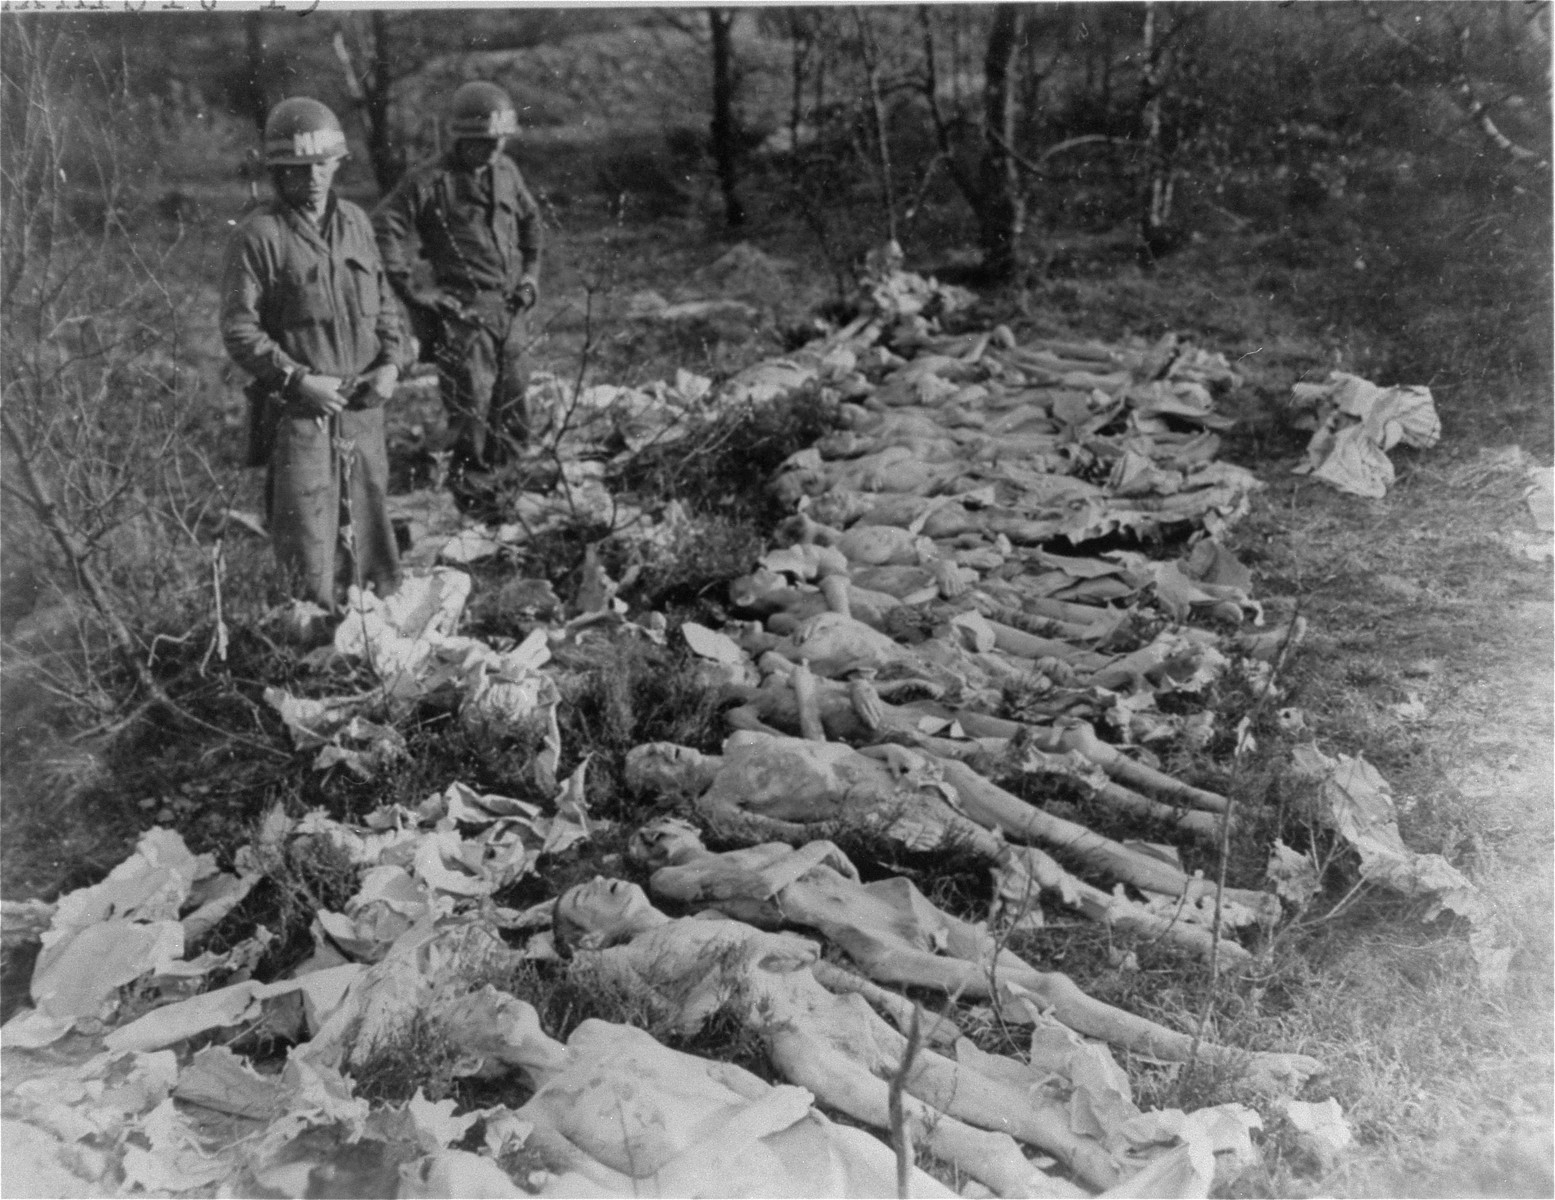 Two American soldiers stand among the bodies of female prisoners exhumed from a mass grave near the Helmbrechts concentration camp, a sub-camp of Flossenbuerg.